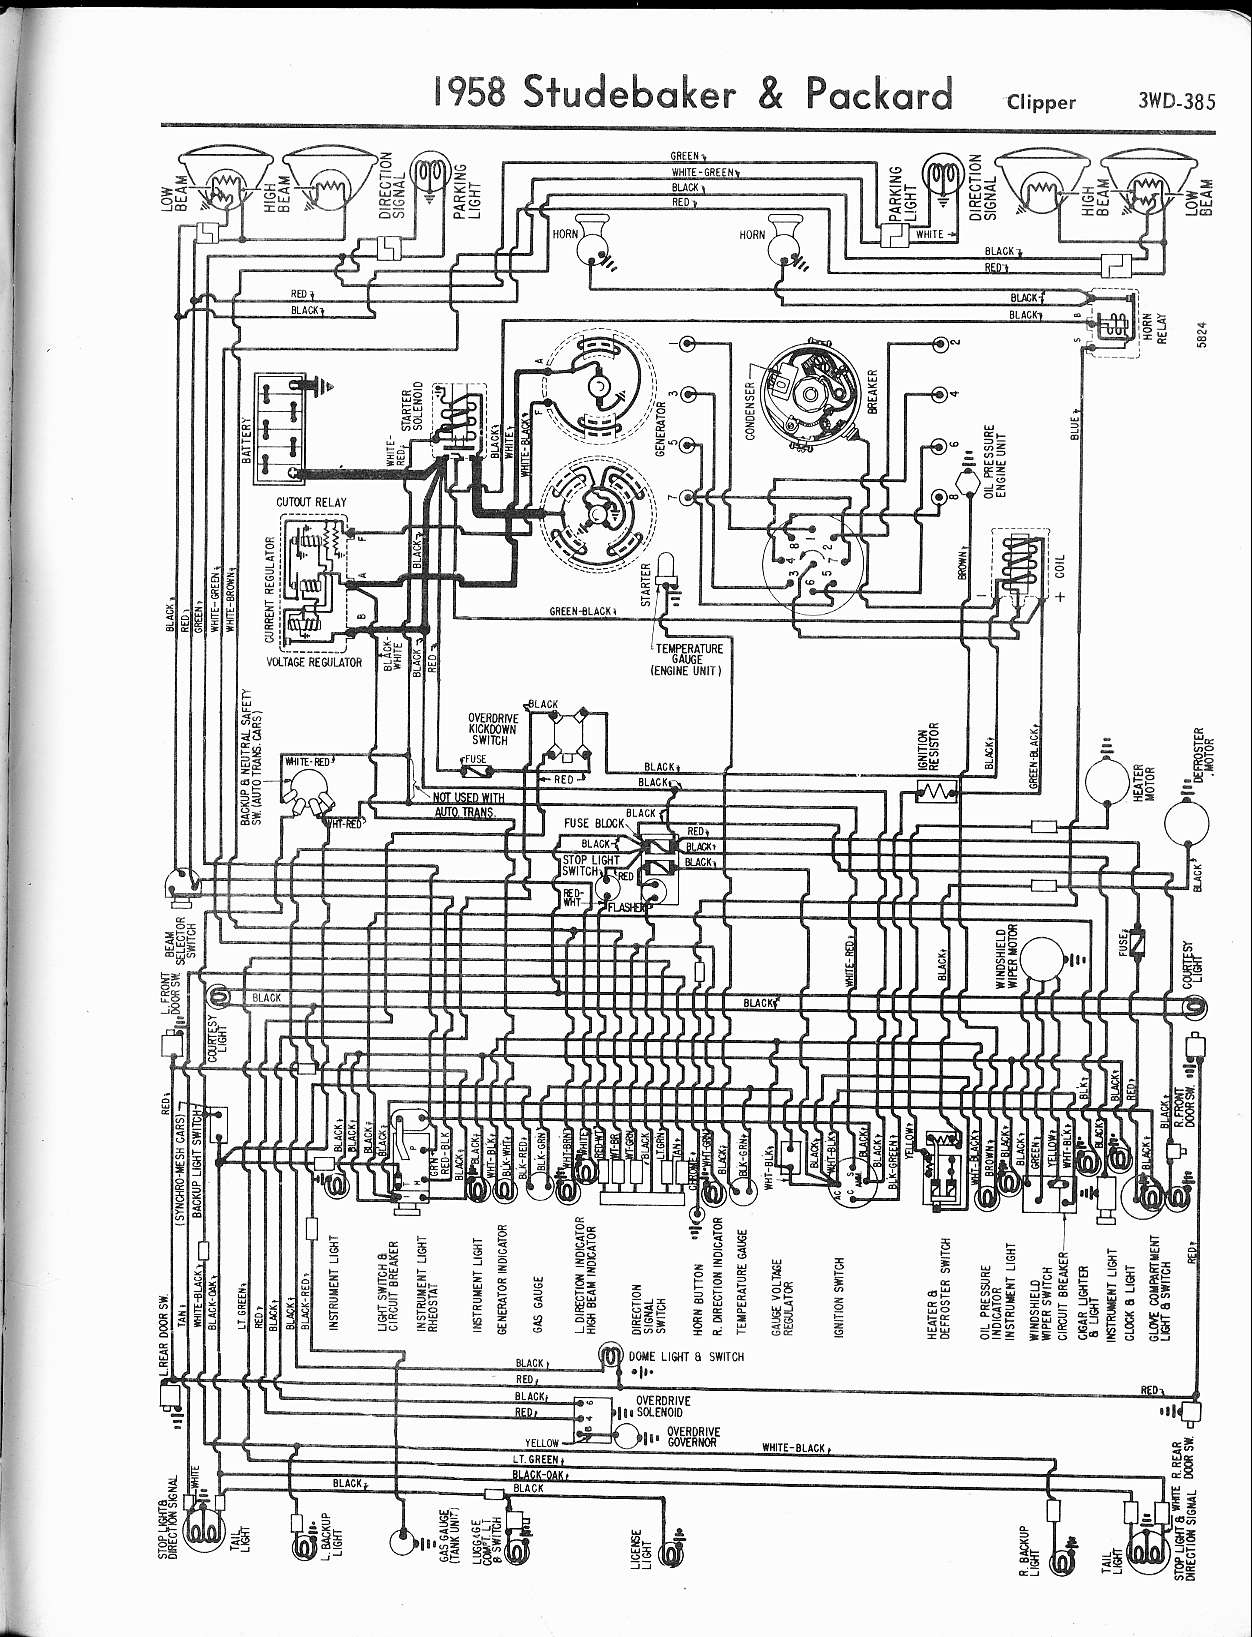 1949 packard wiring diagram wiring diagrams schematics rh woodmart co 2009 Club Car Wiring Diagram 2009 Club Car Wiring Diagram